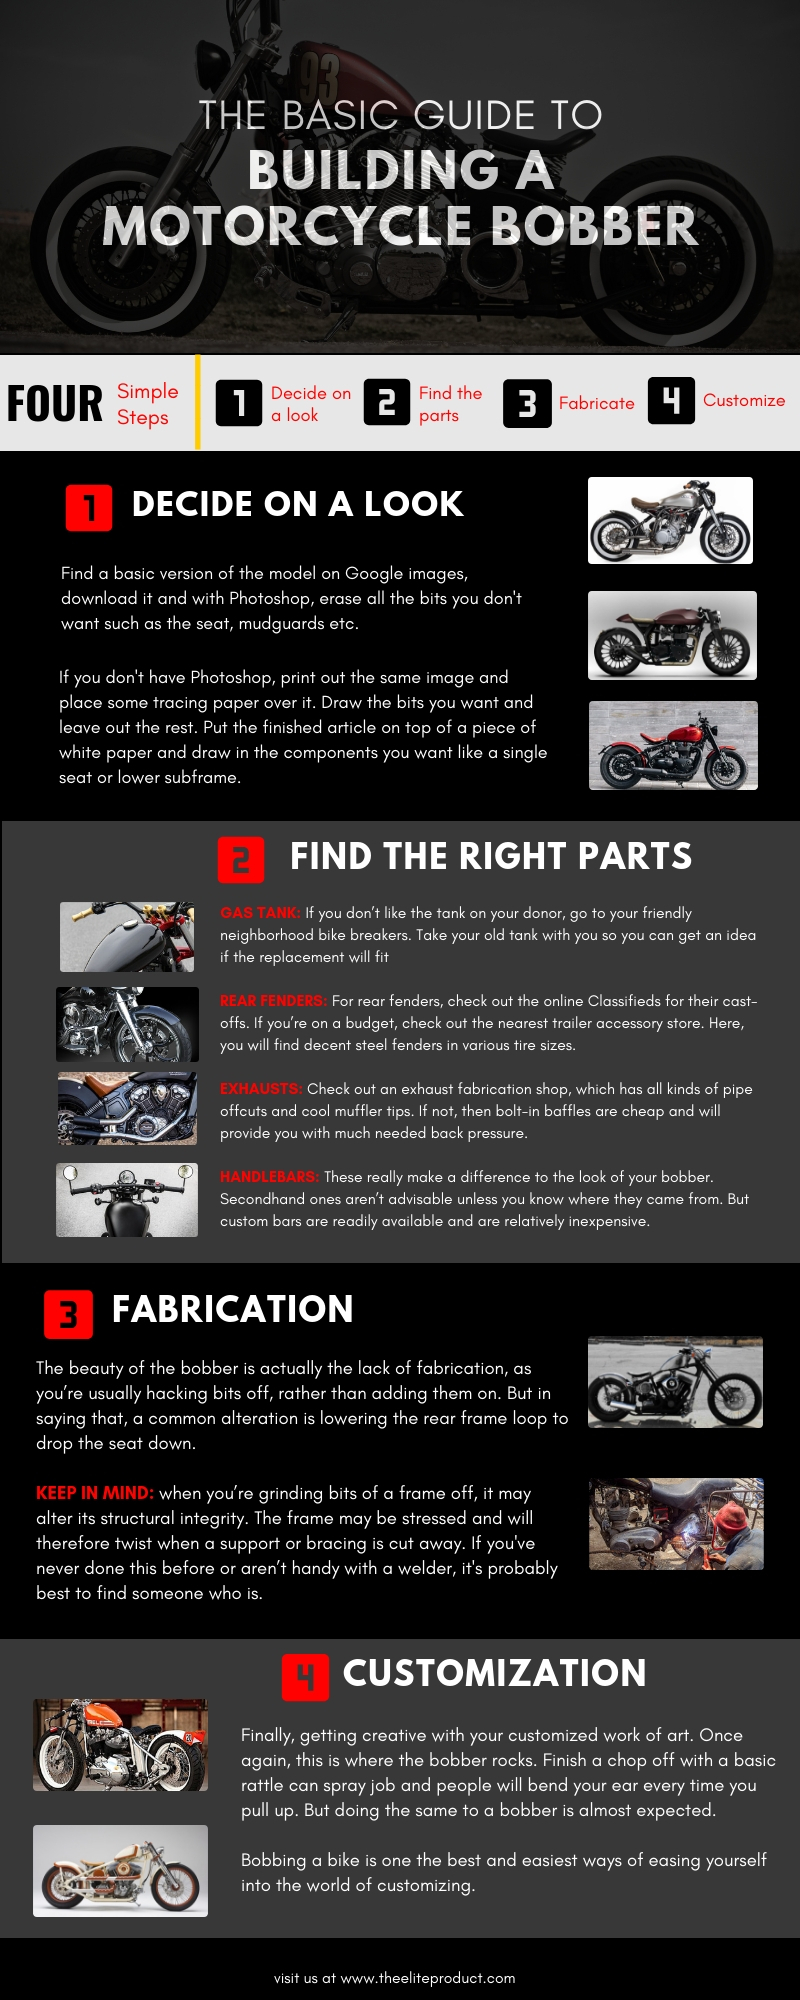 building a motorcycle bobber infographic